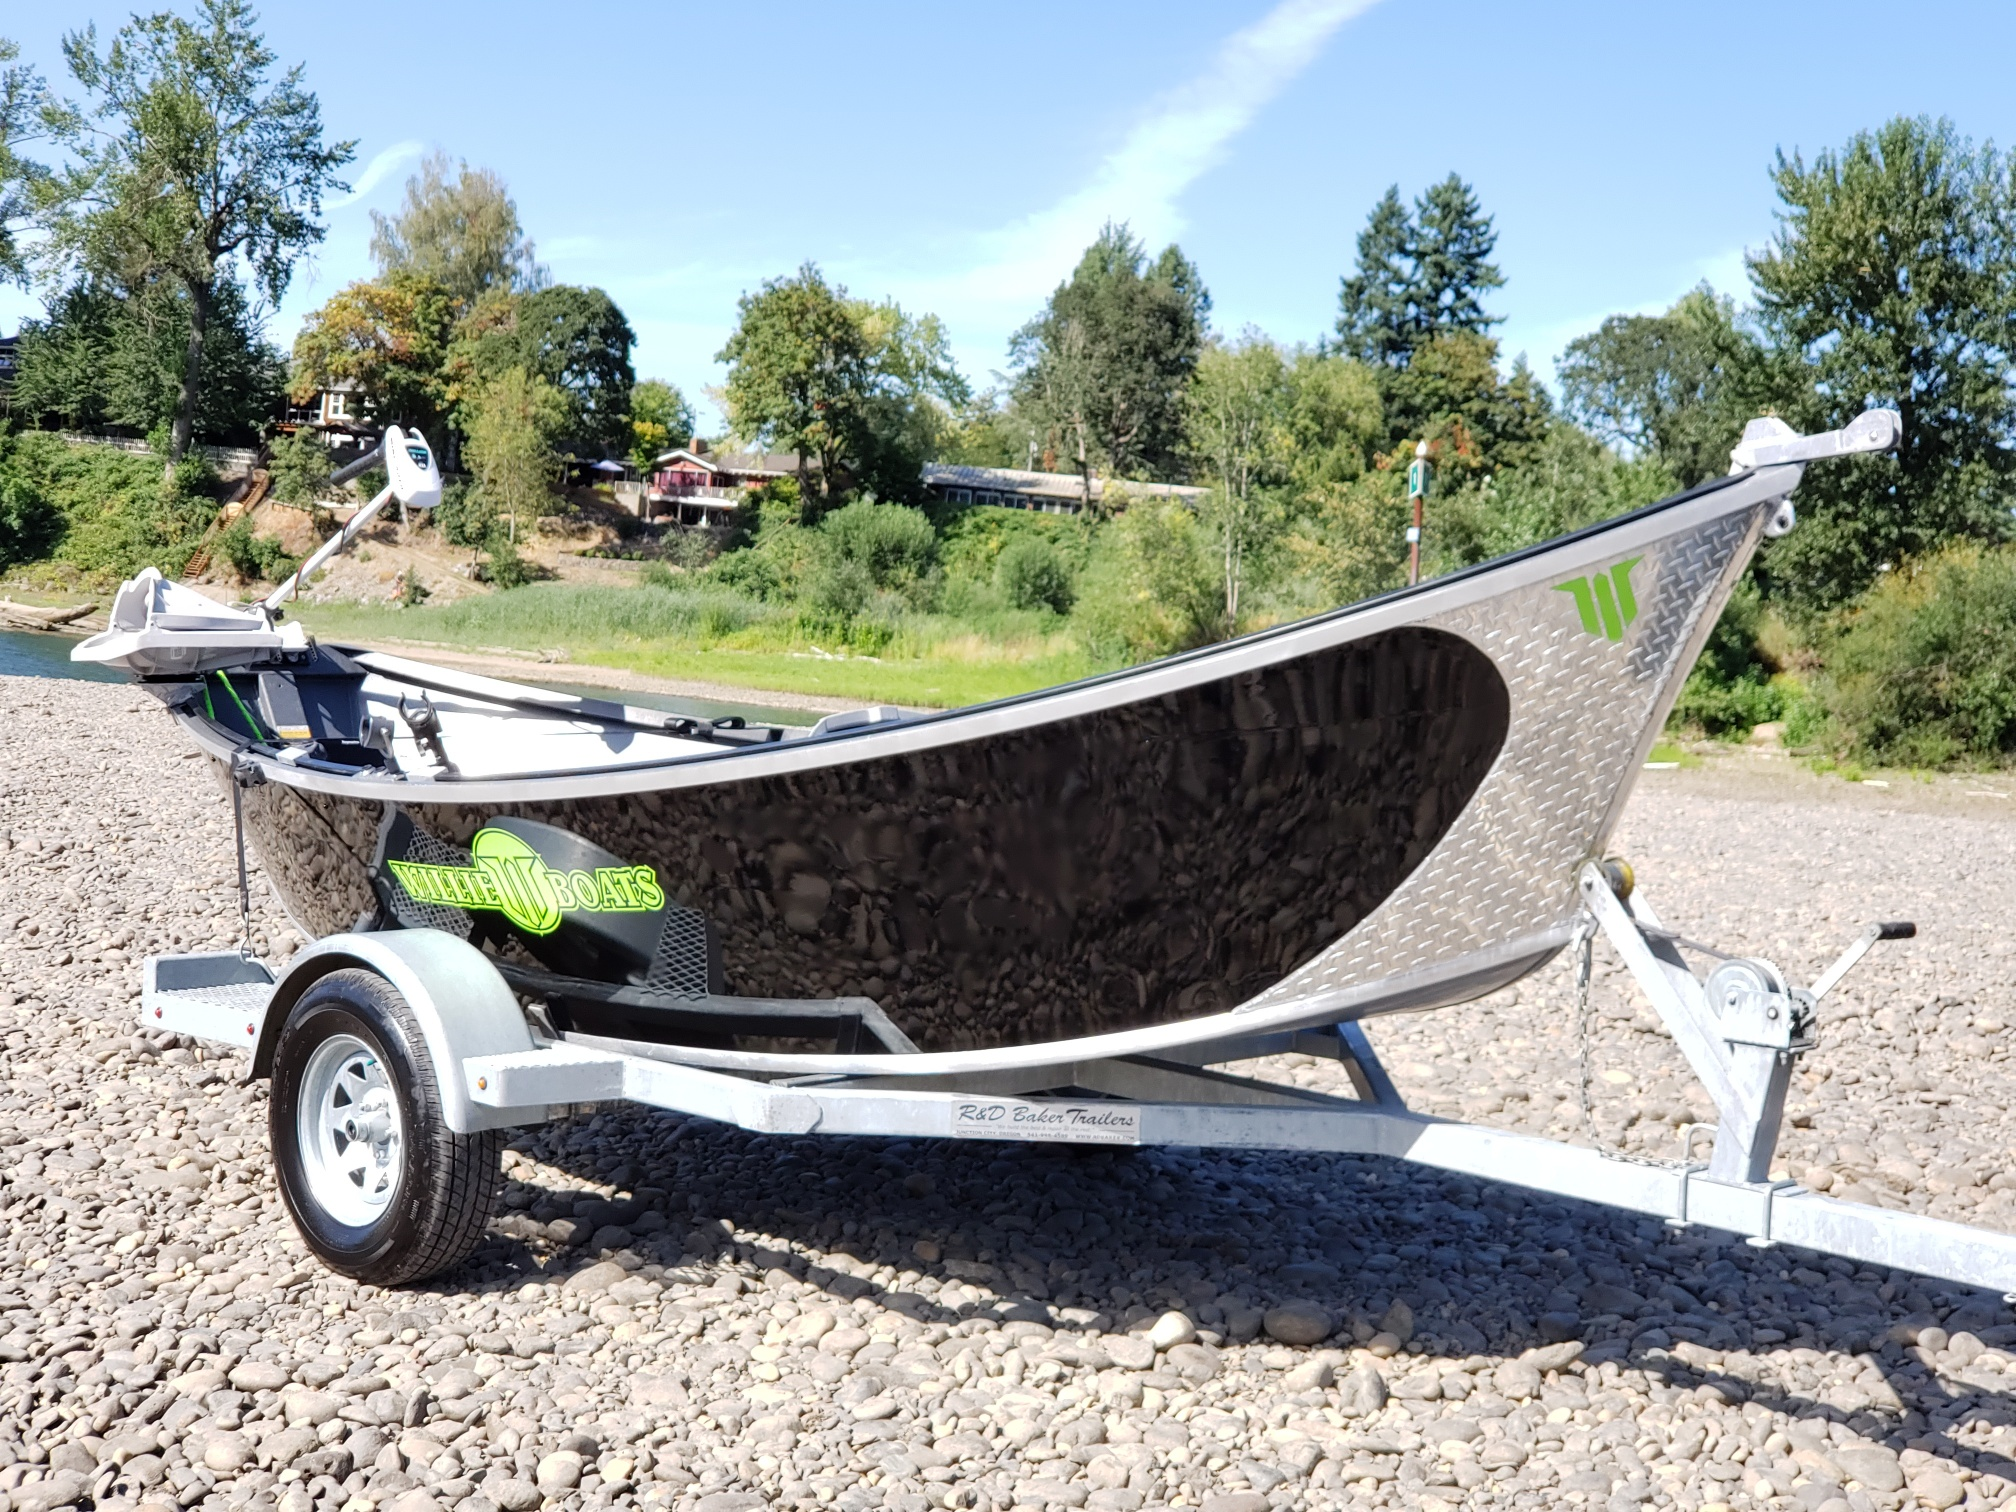 Pre-Owned Boats for Sale - Willie Boats